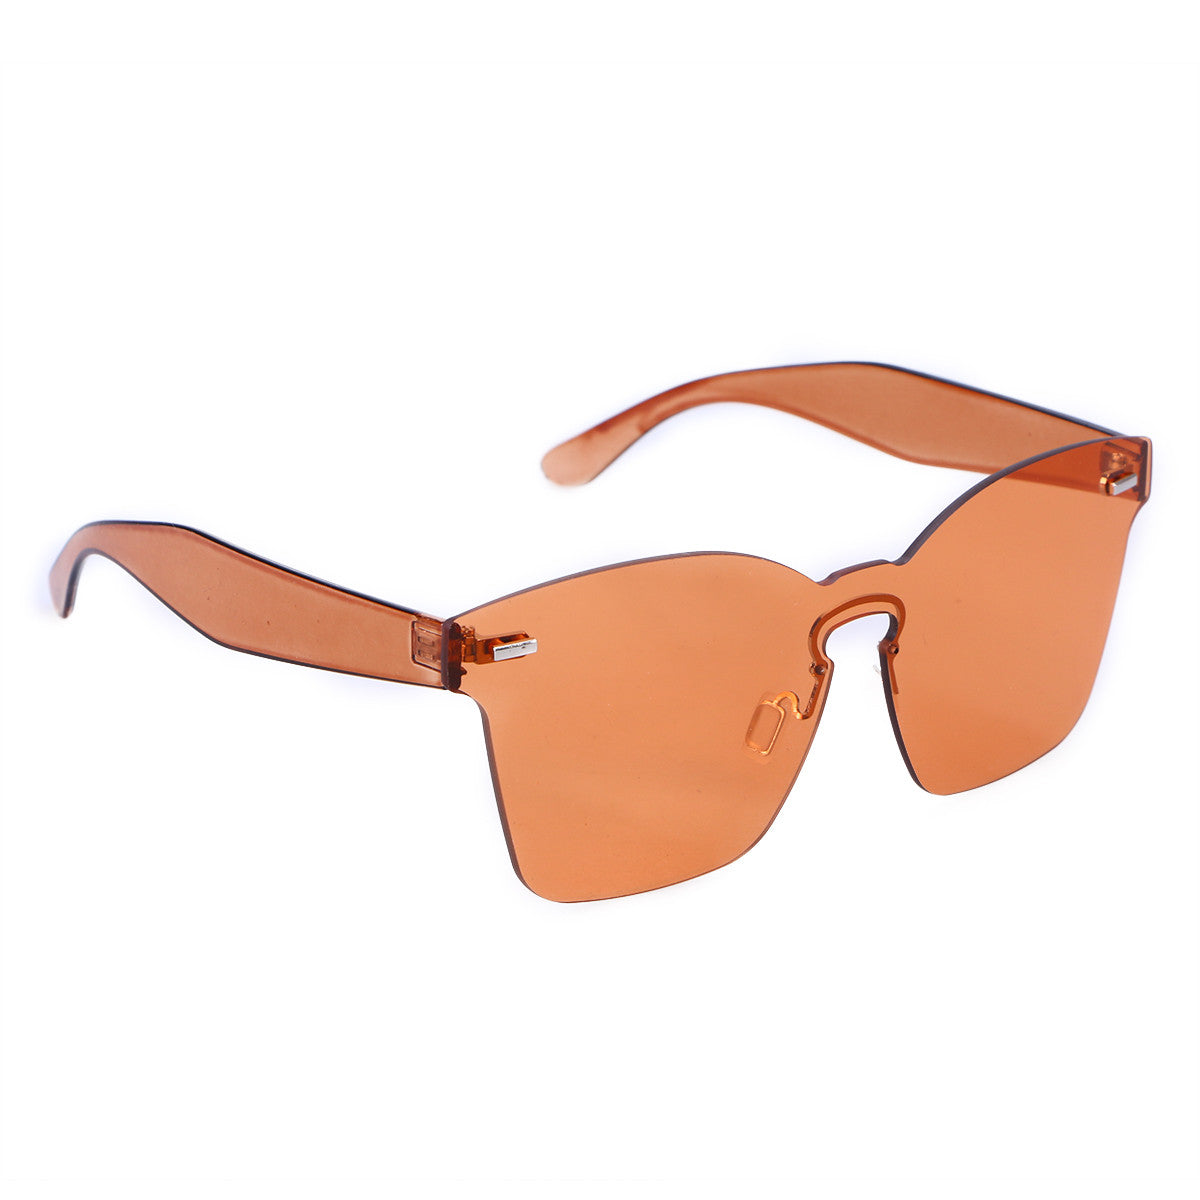 Solid Vintage Stylish Sunglasses